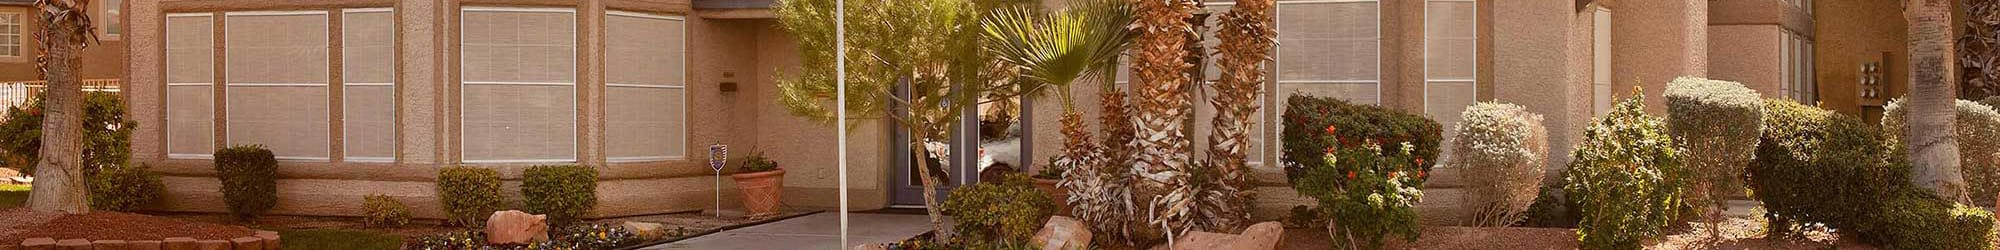 Visit our Residents page for online resources for Sunrise Springs Apartments